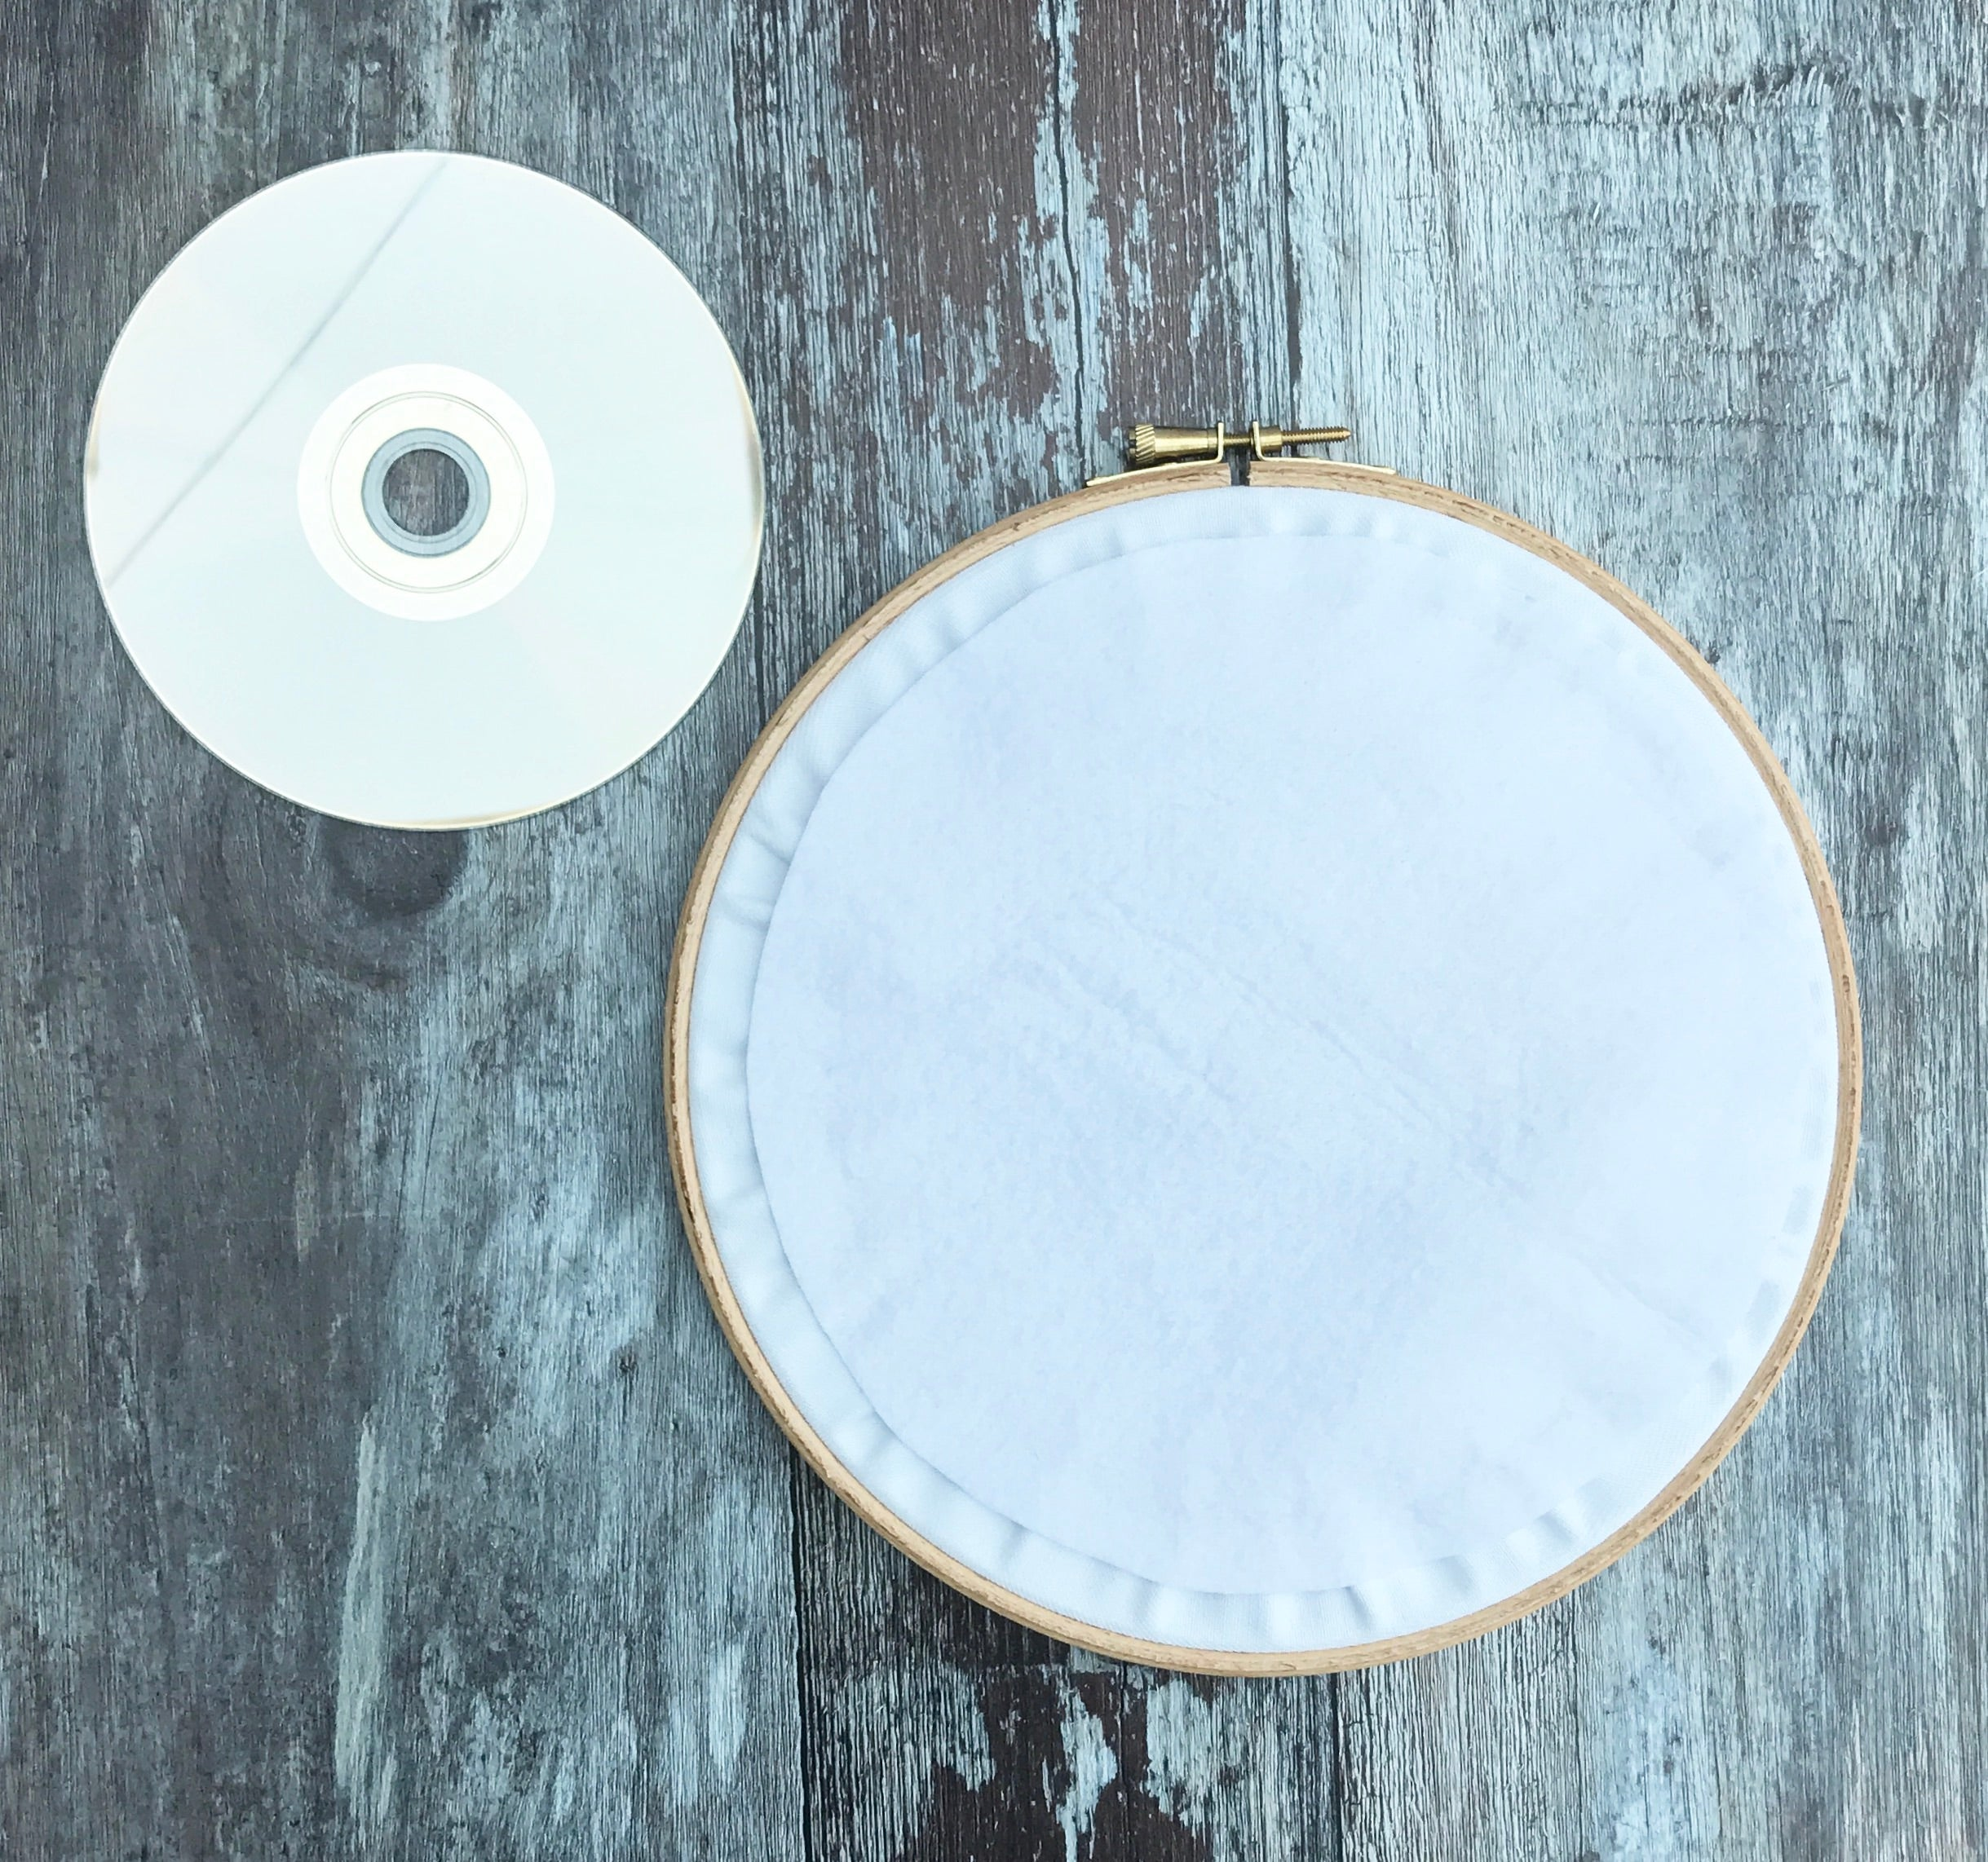 What doesn't kill me better start running Embroidery hoop art